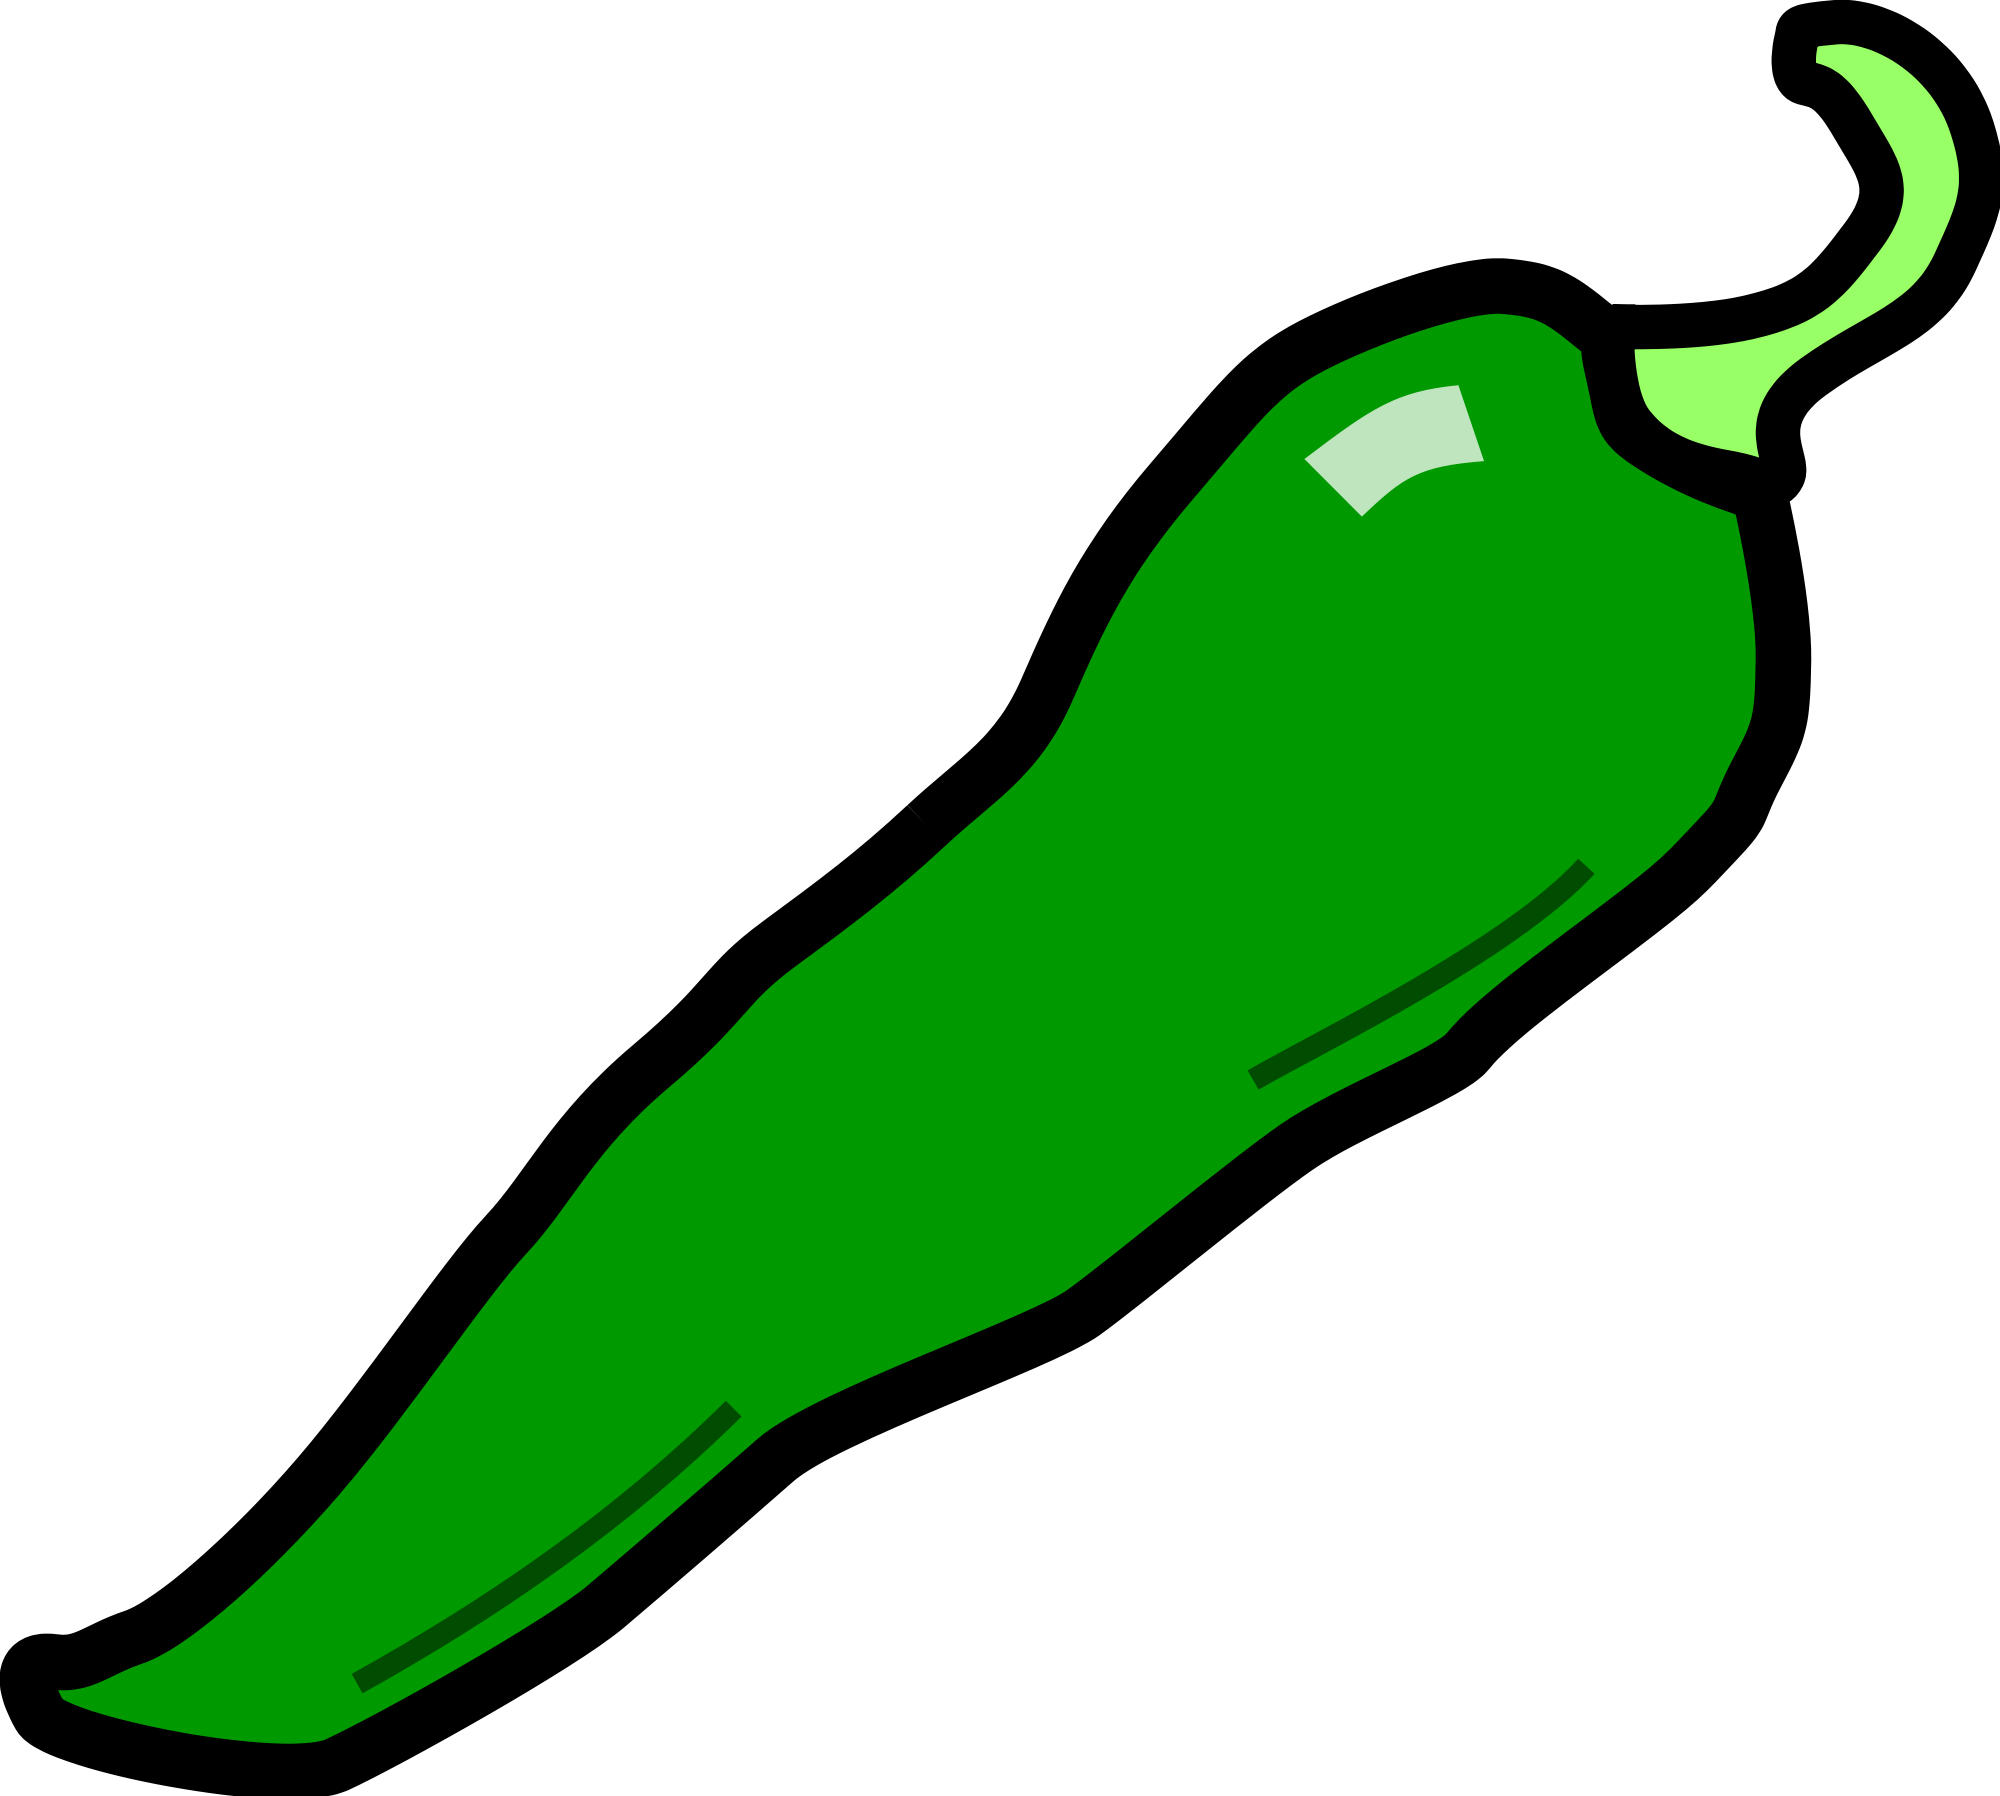 Open PlusPng pluspng.com - Free Jalapeno PNG - Jalapeno PNG HD